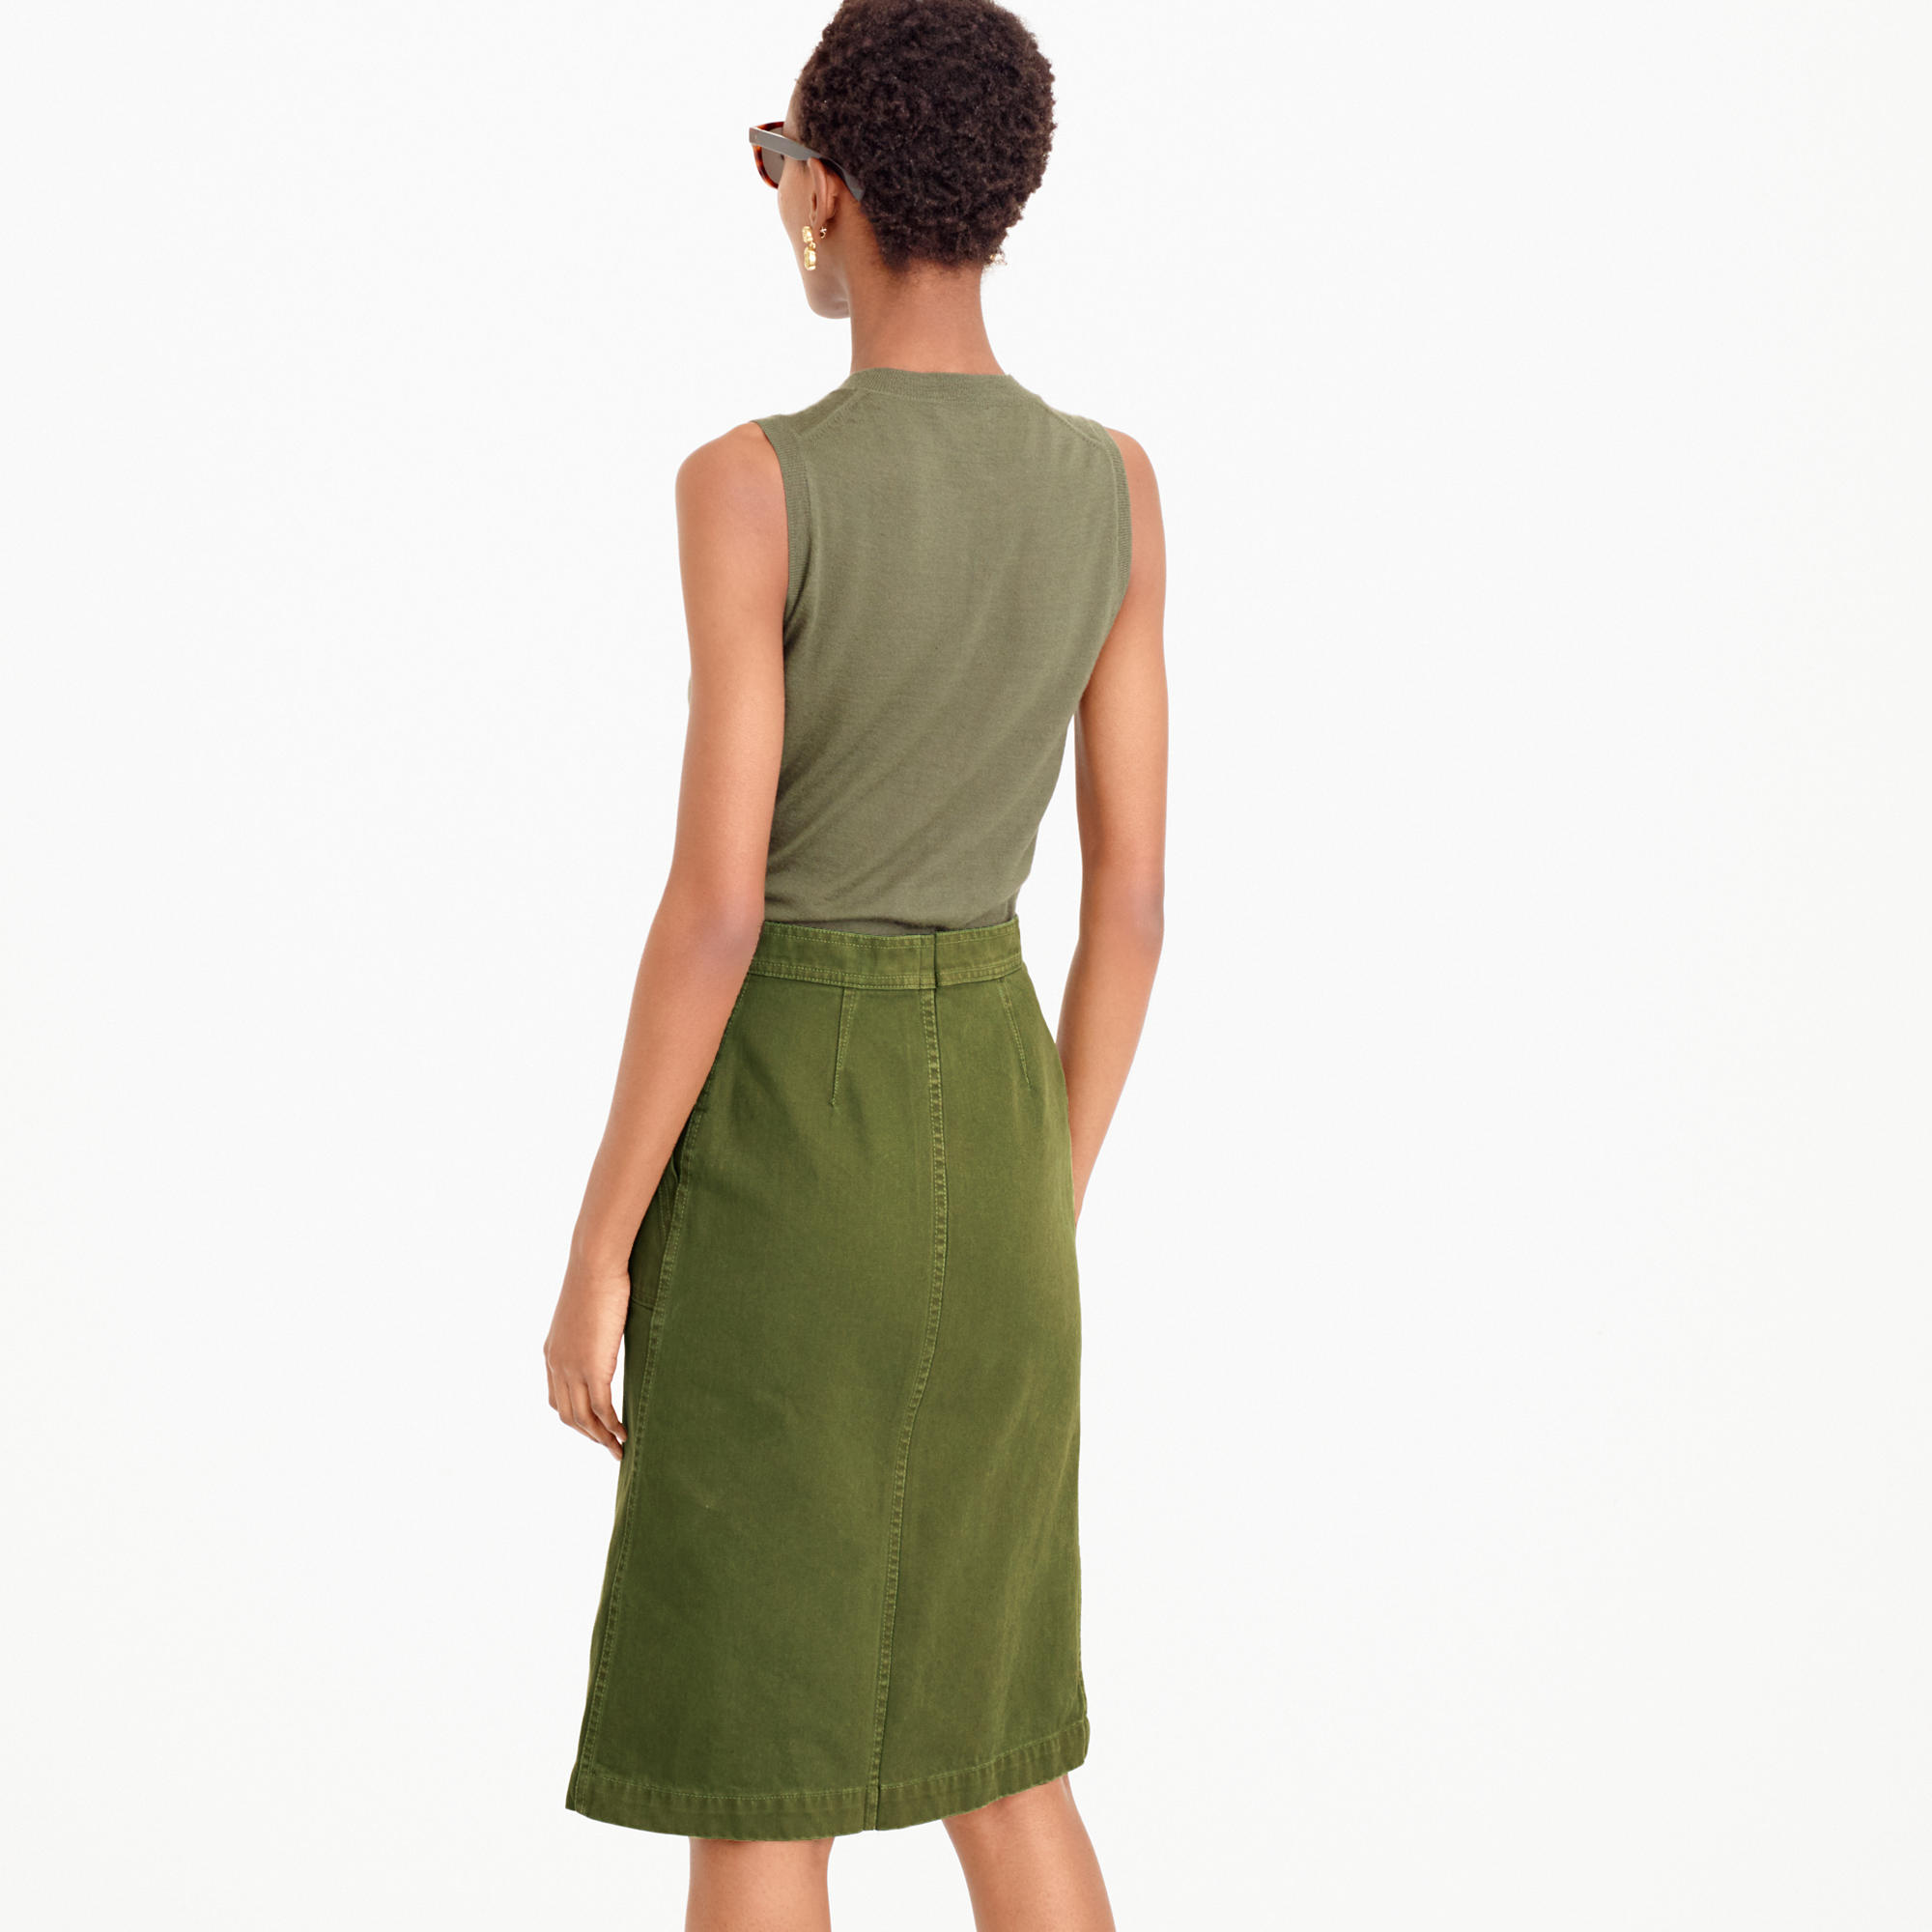 A-line skirt with pockets : Women A-line/Midi | J.Crew